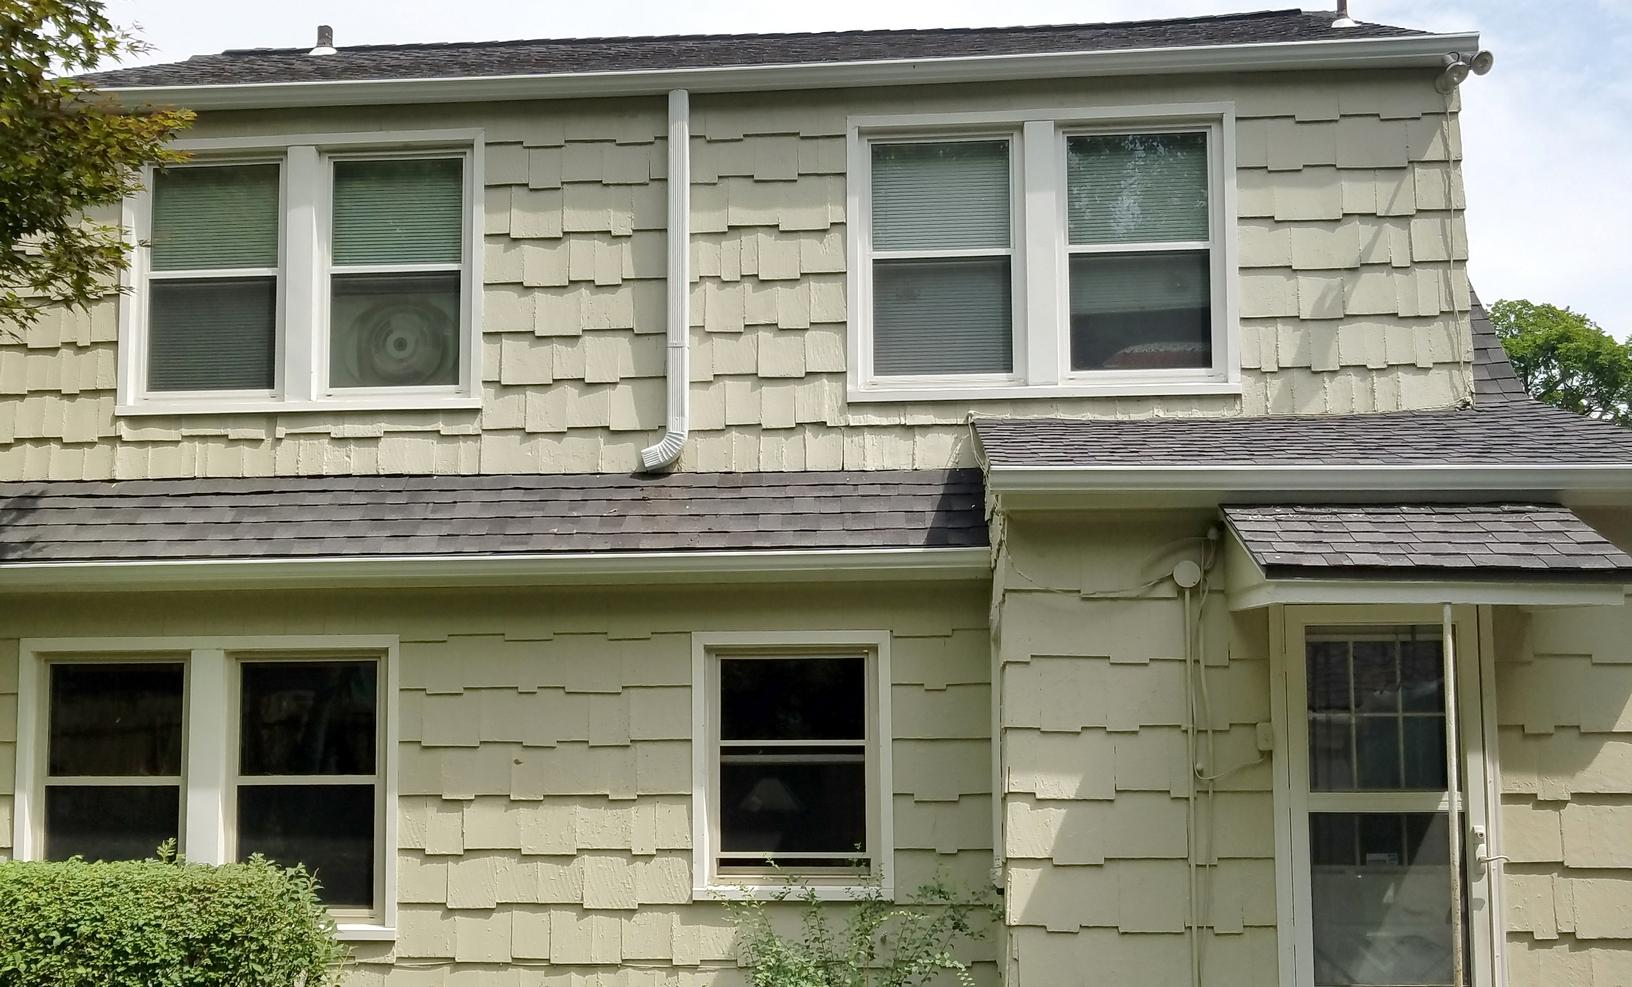 Kansas City, MO Home with New Aluminum Seamless Gutters - After Photo